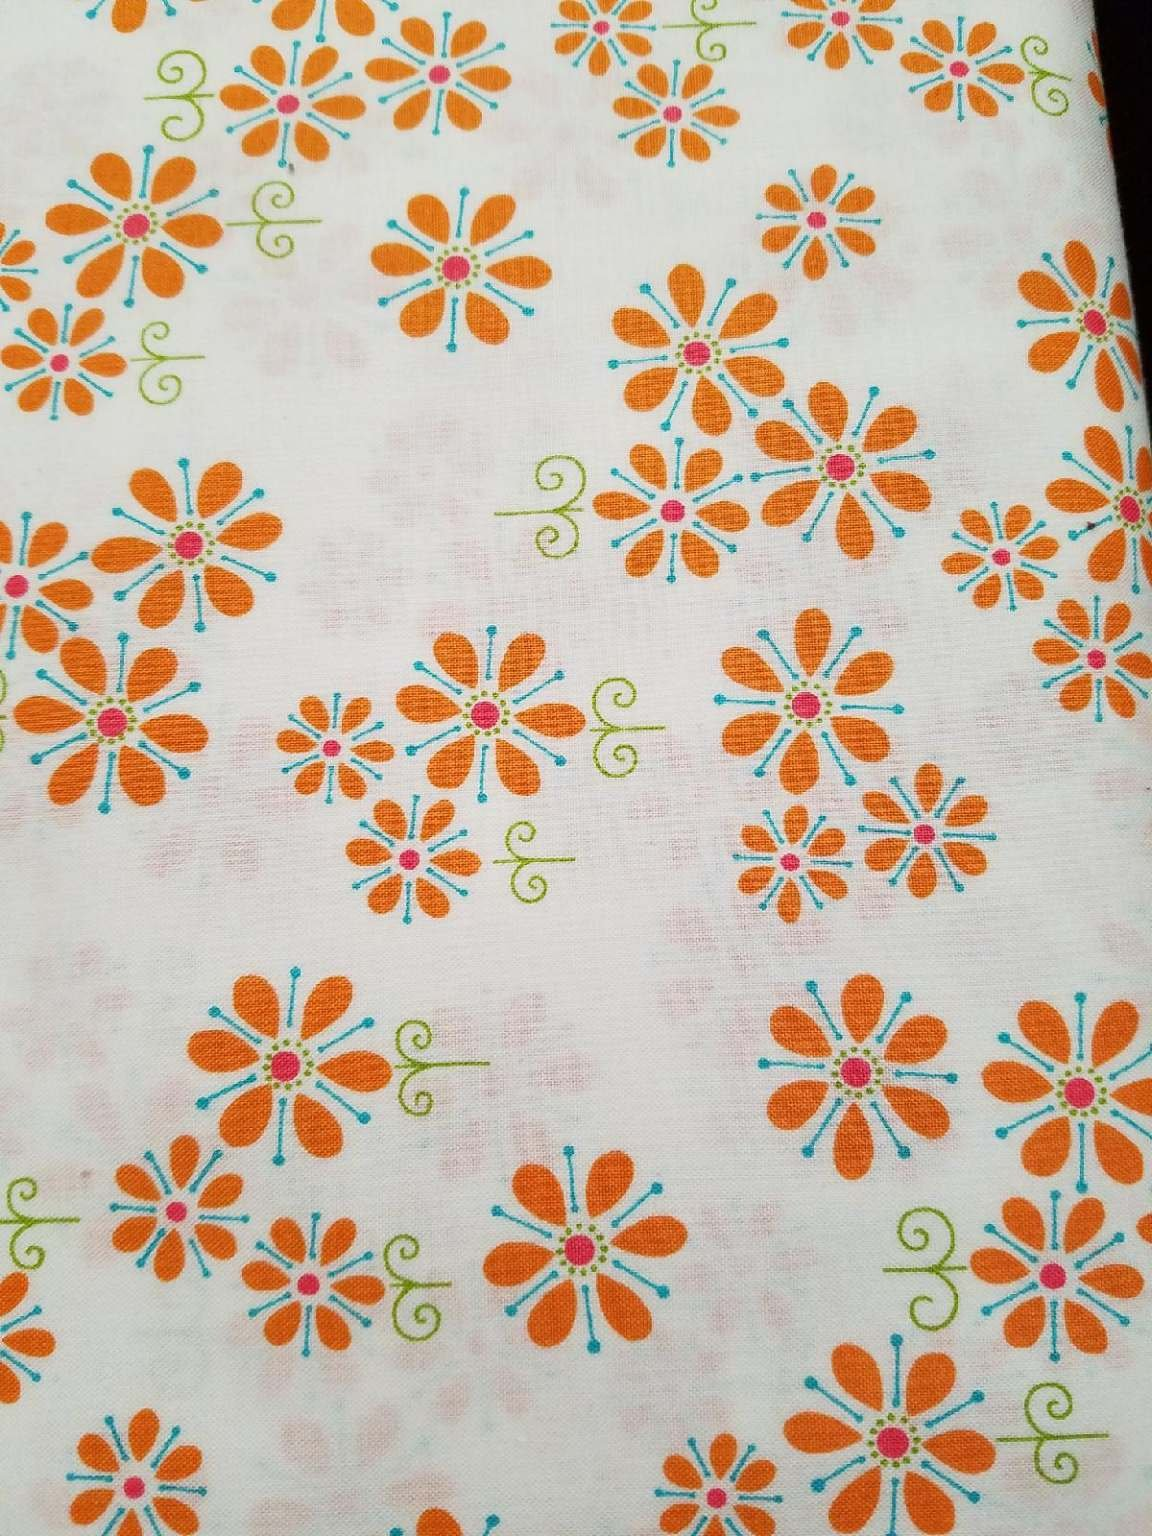 Andover Fabrics Dilly Dally by Kathy Hall Small floral print on white